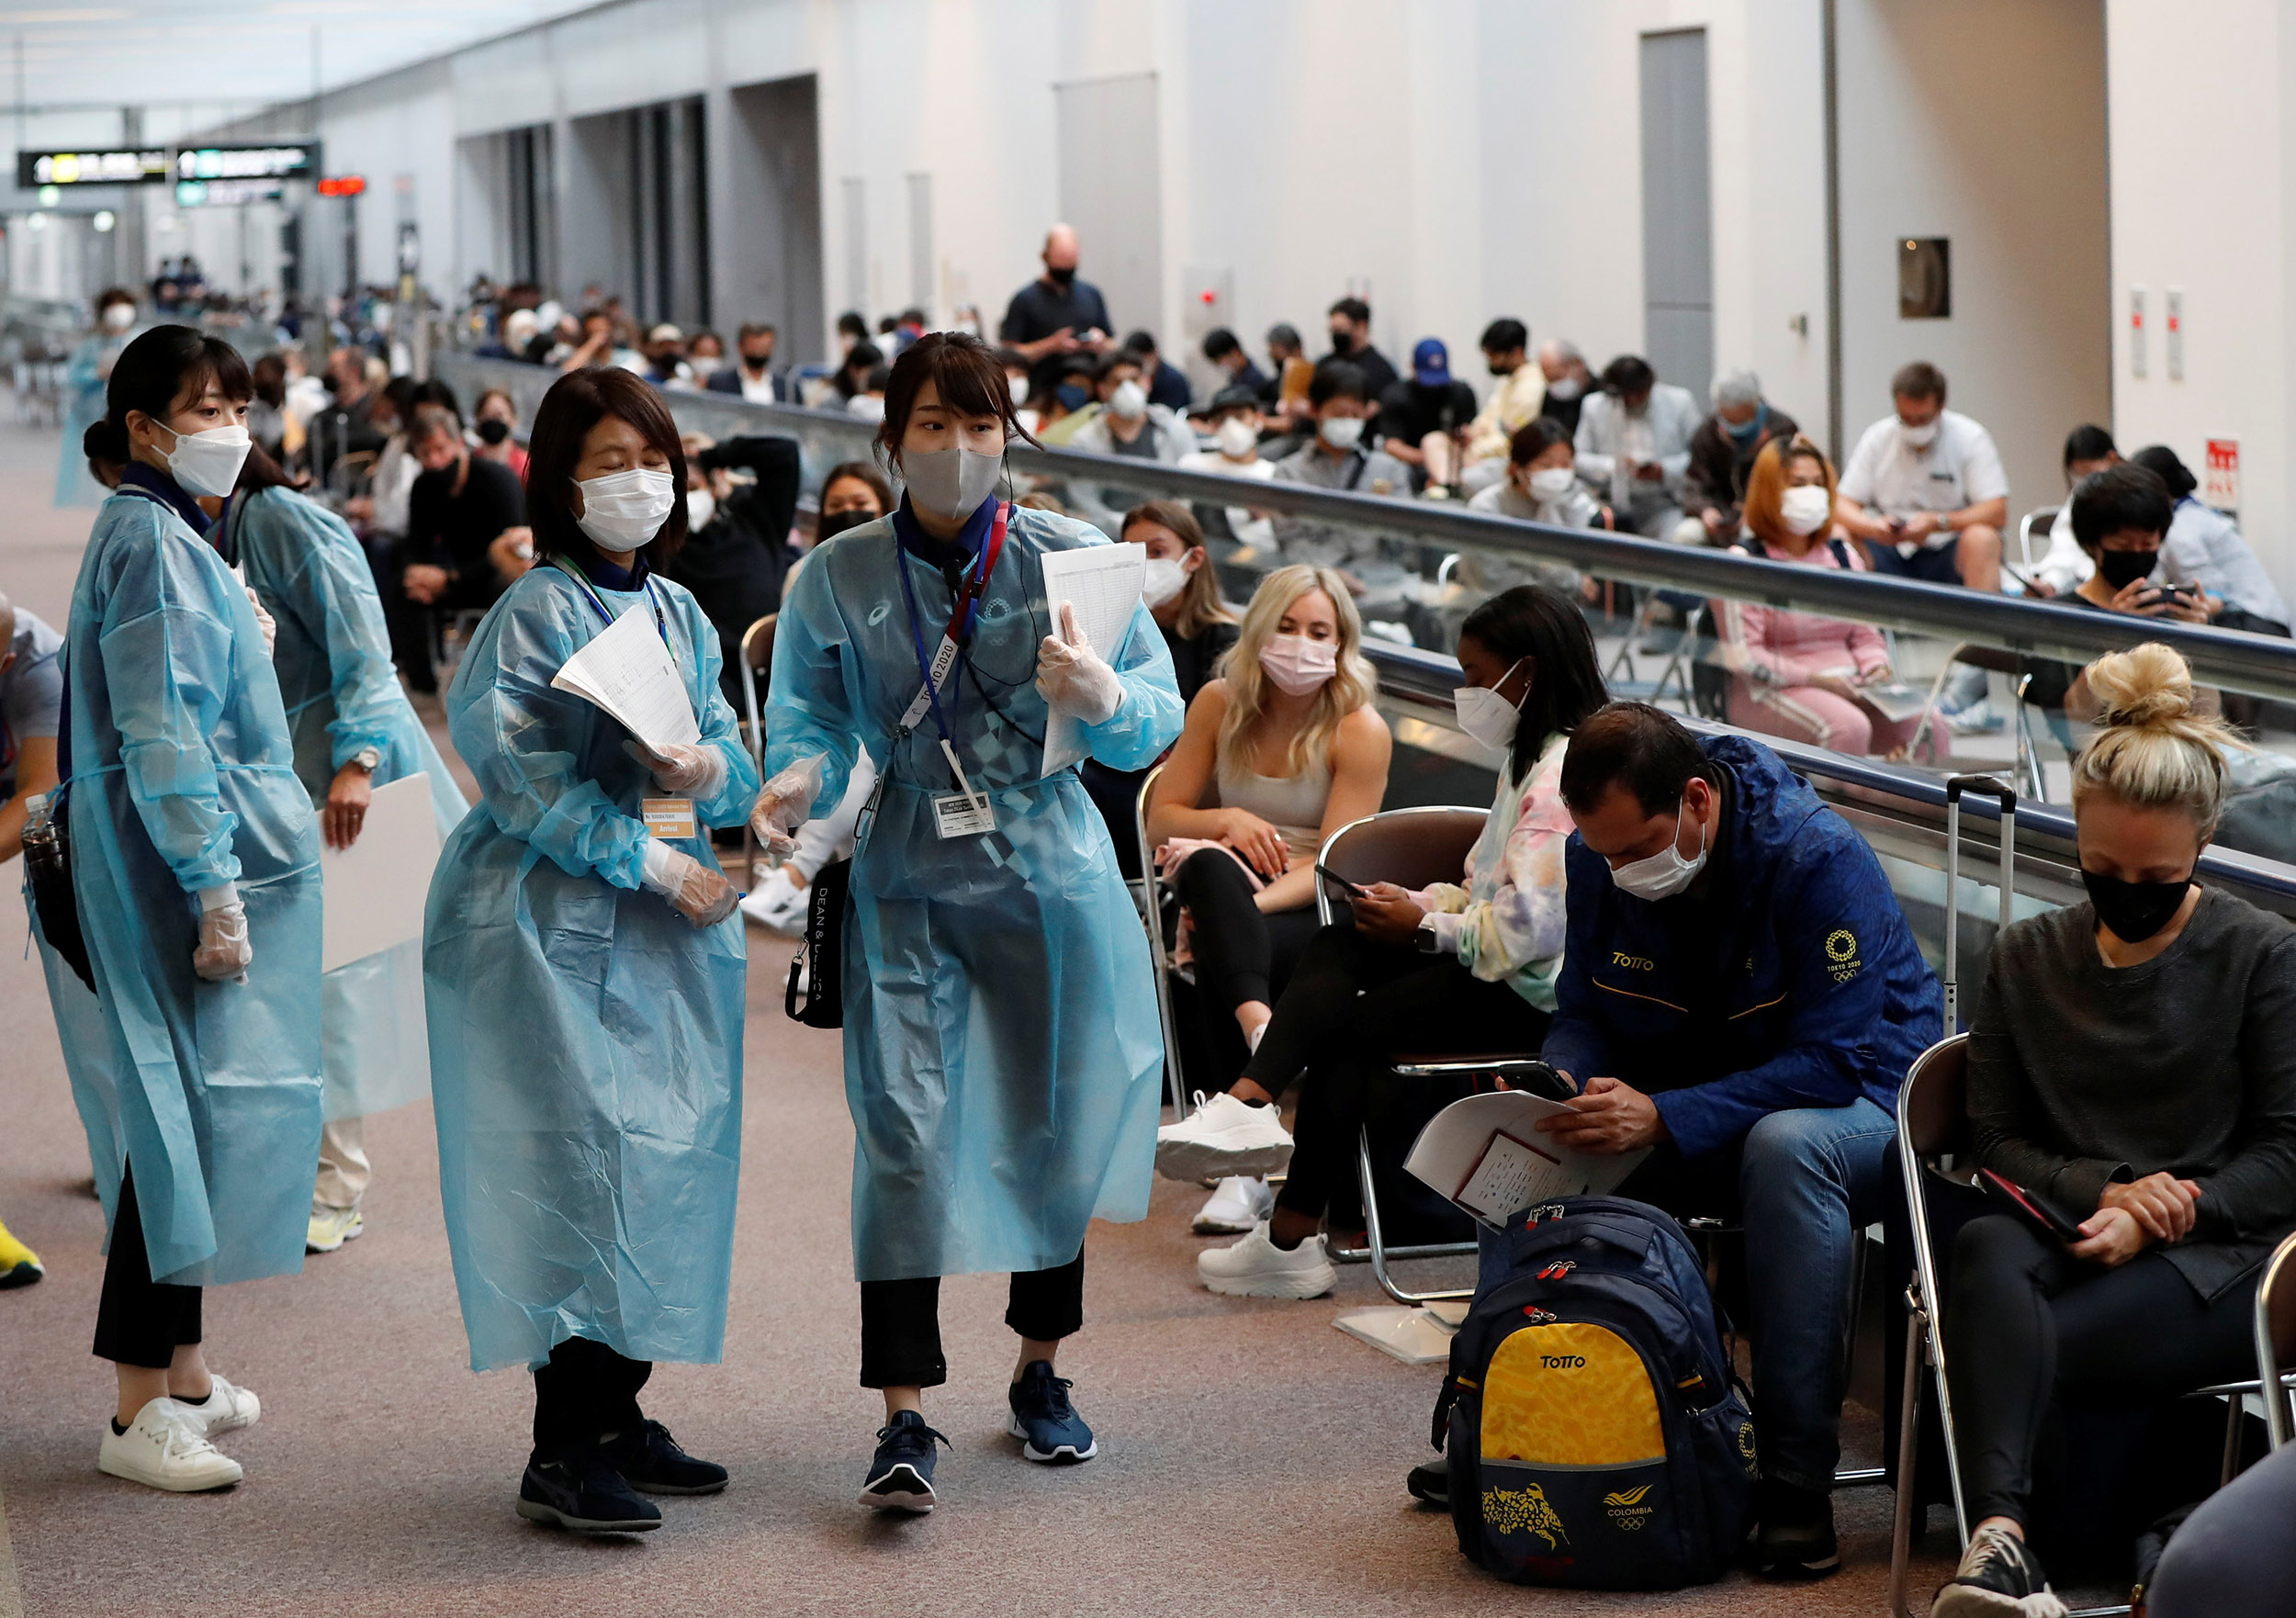 About 100 U.S. athletes in Tokyo unvaccinated as Olympics begin